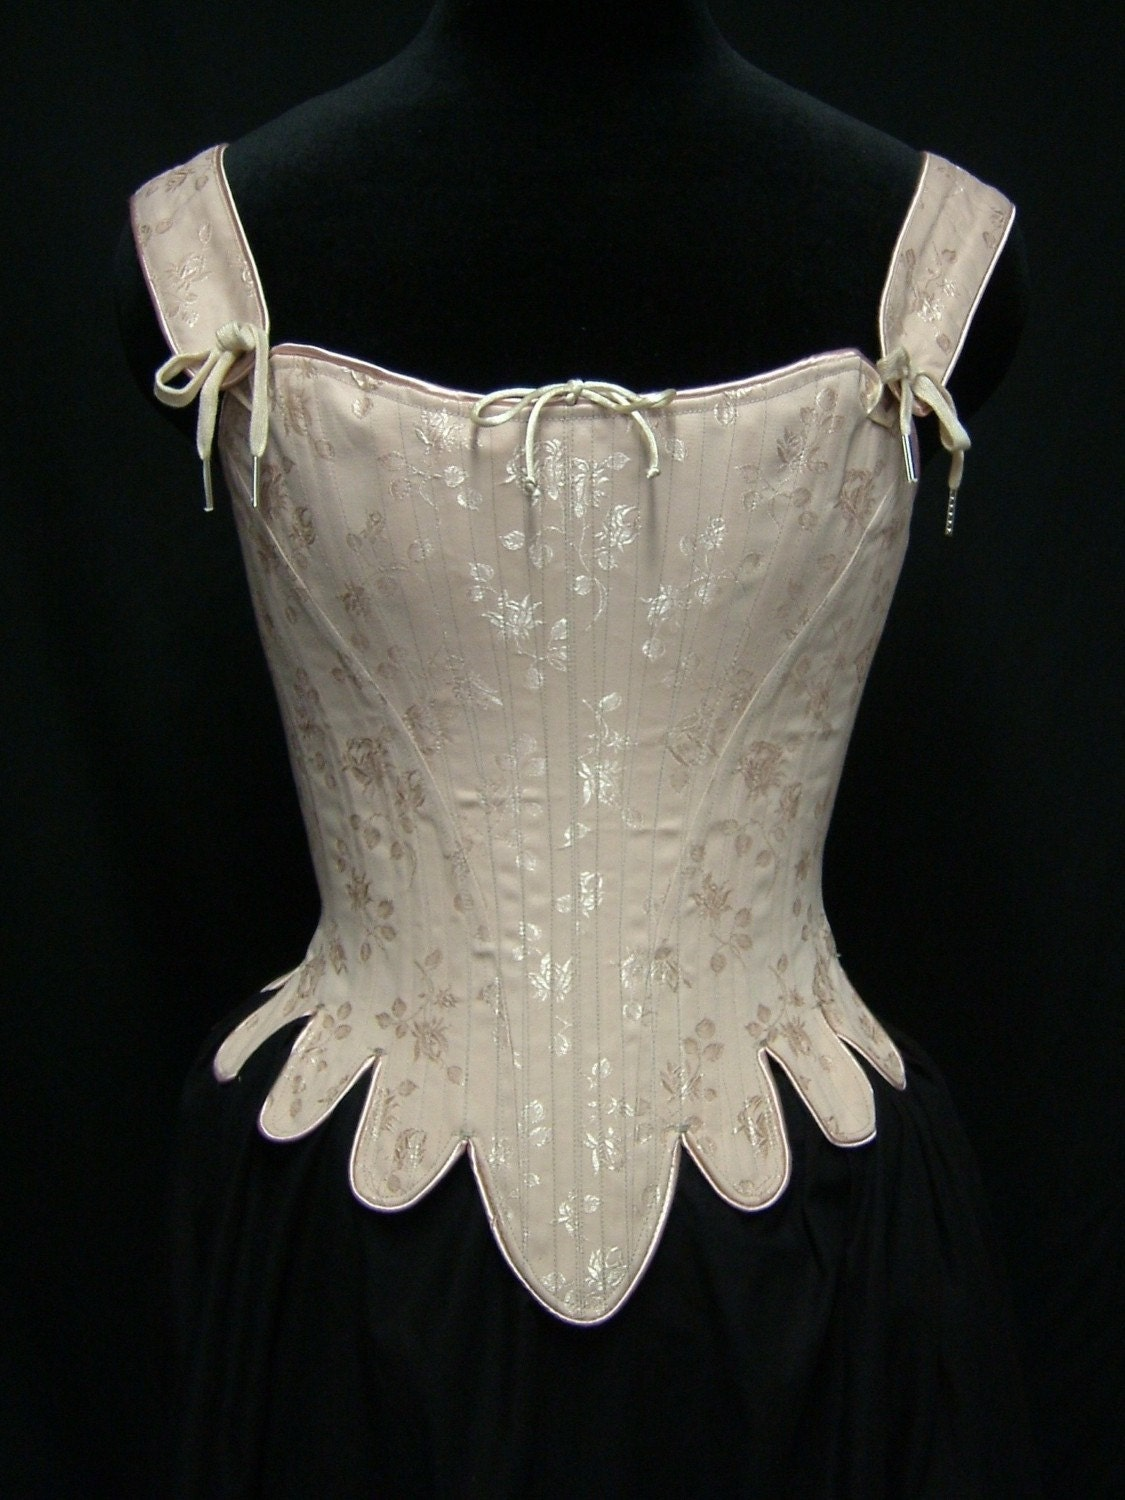 18th Century Marie Antoinette Corset Stays in brocade cotton